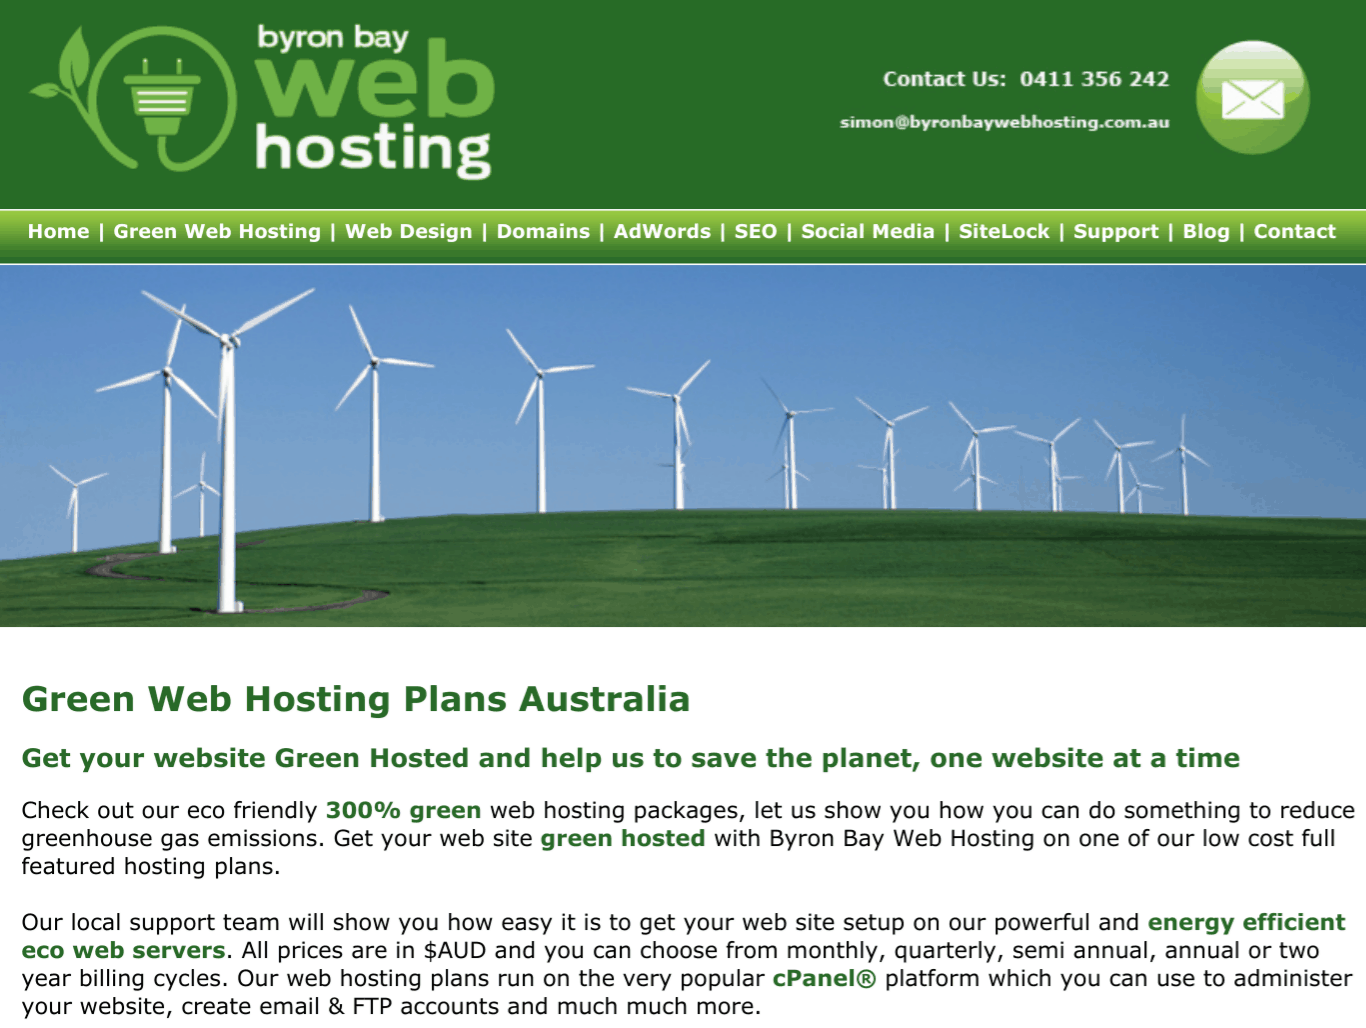 Byron-Bay-Web-Hosting-overview1